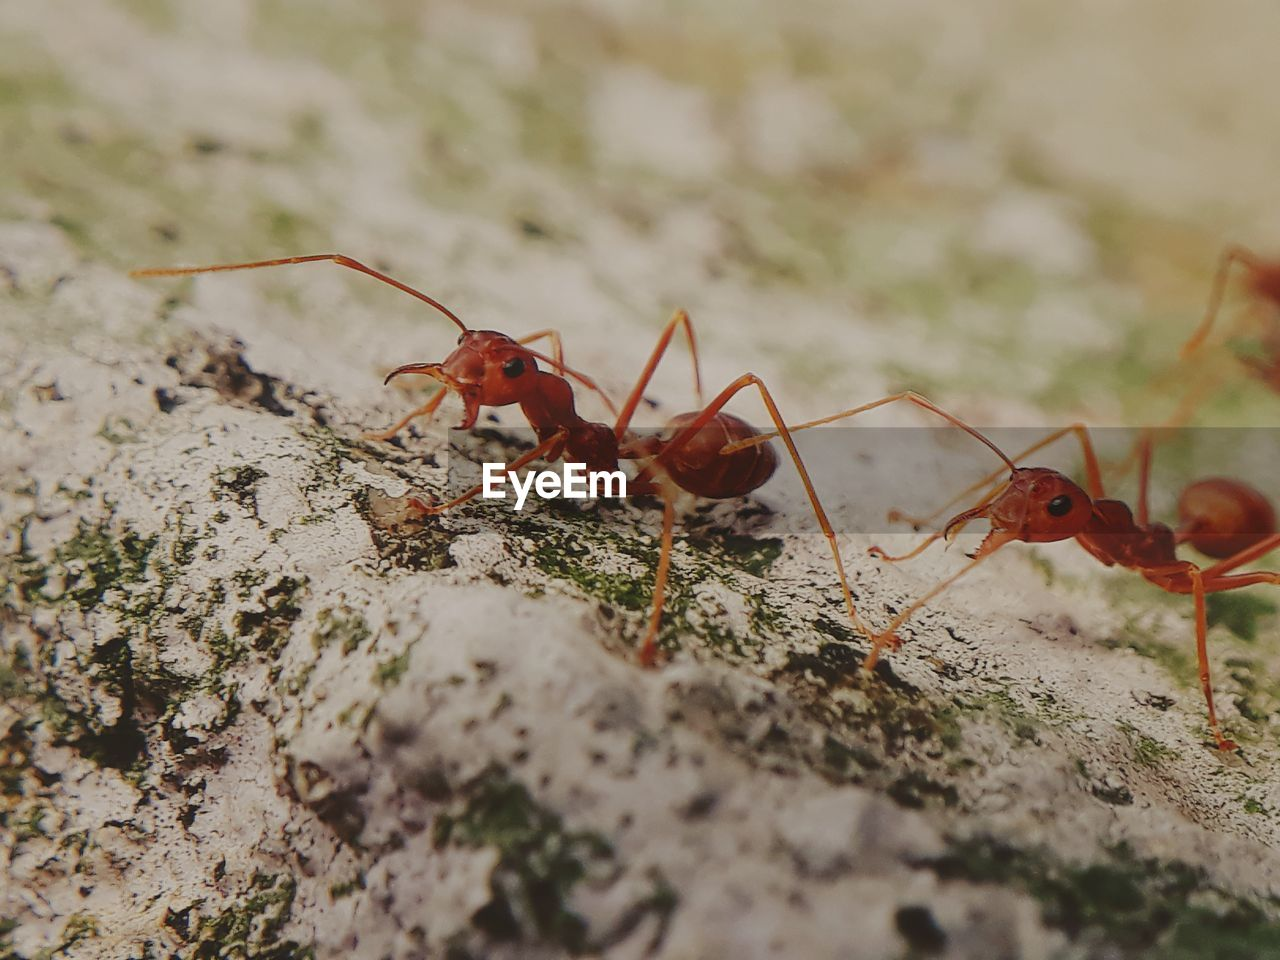 invertebrate, insect, animal themes, animal wildlife, animal, animals in the wild, selective focus, close-up, ant, no people, day, red, group of animals, nature, animal body part, zoology, outdoors, food, animal antenna